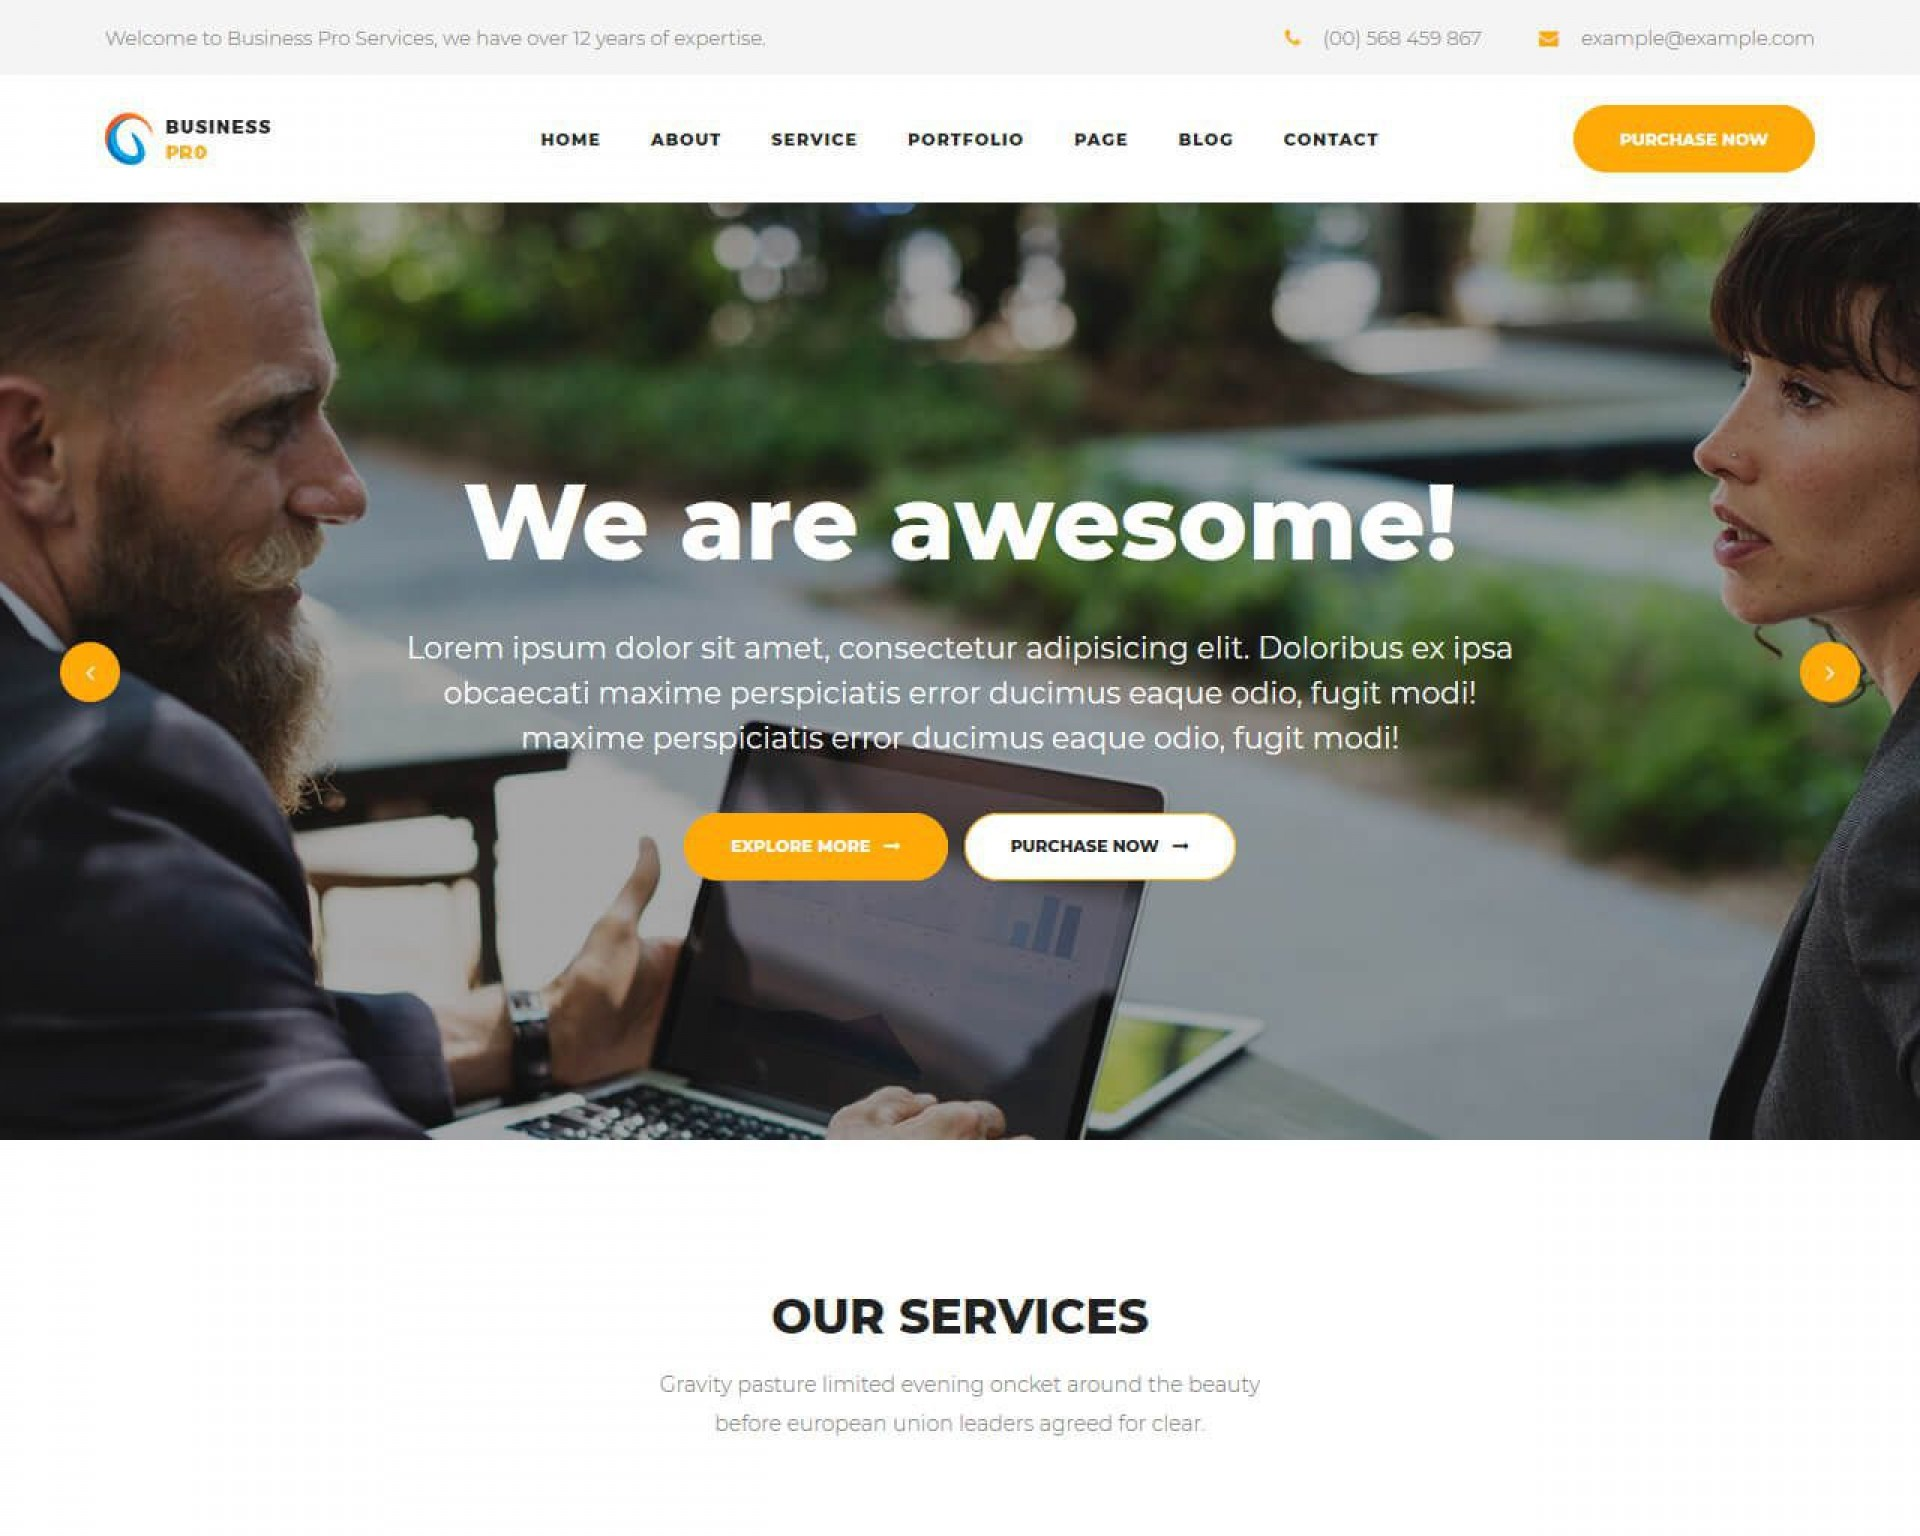 006 Unique Free Busines Website Template Download Html And Cs Image  Css1920